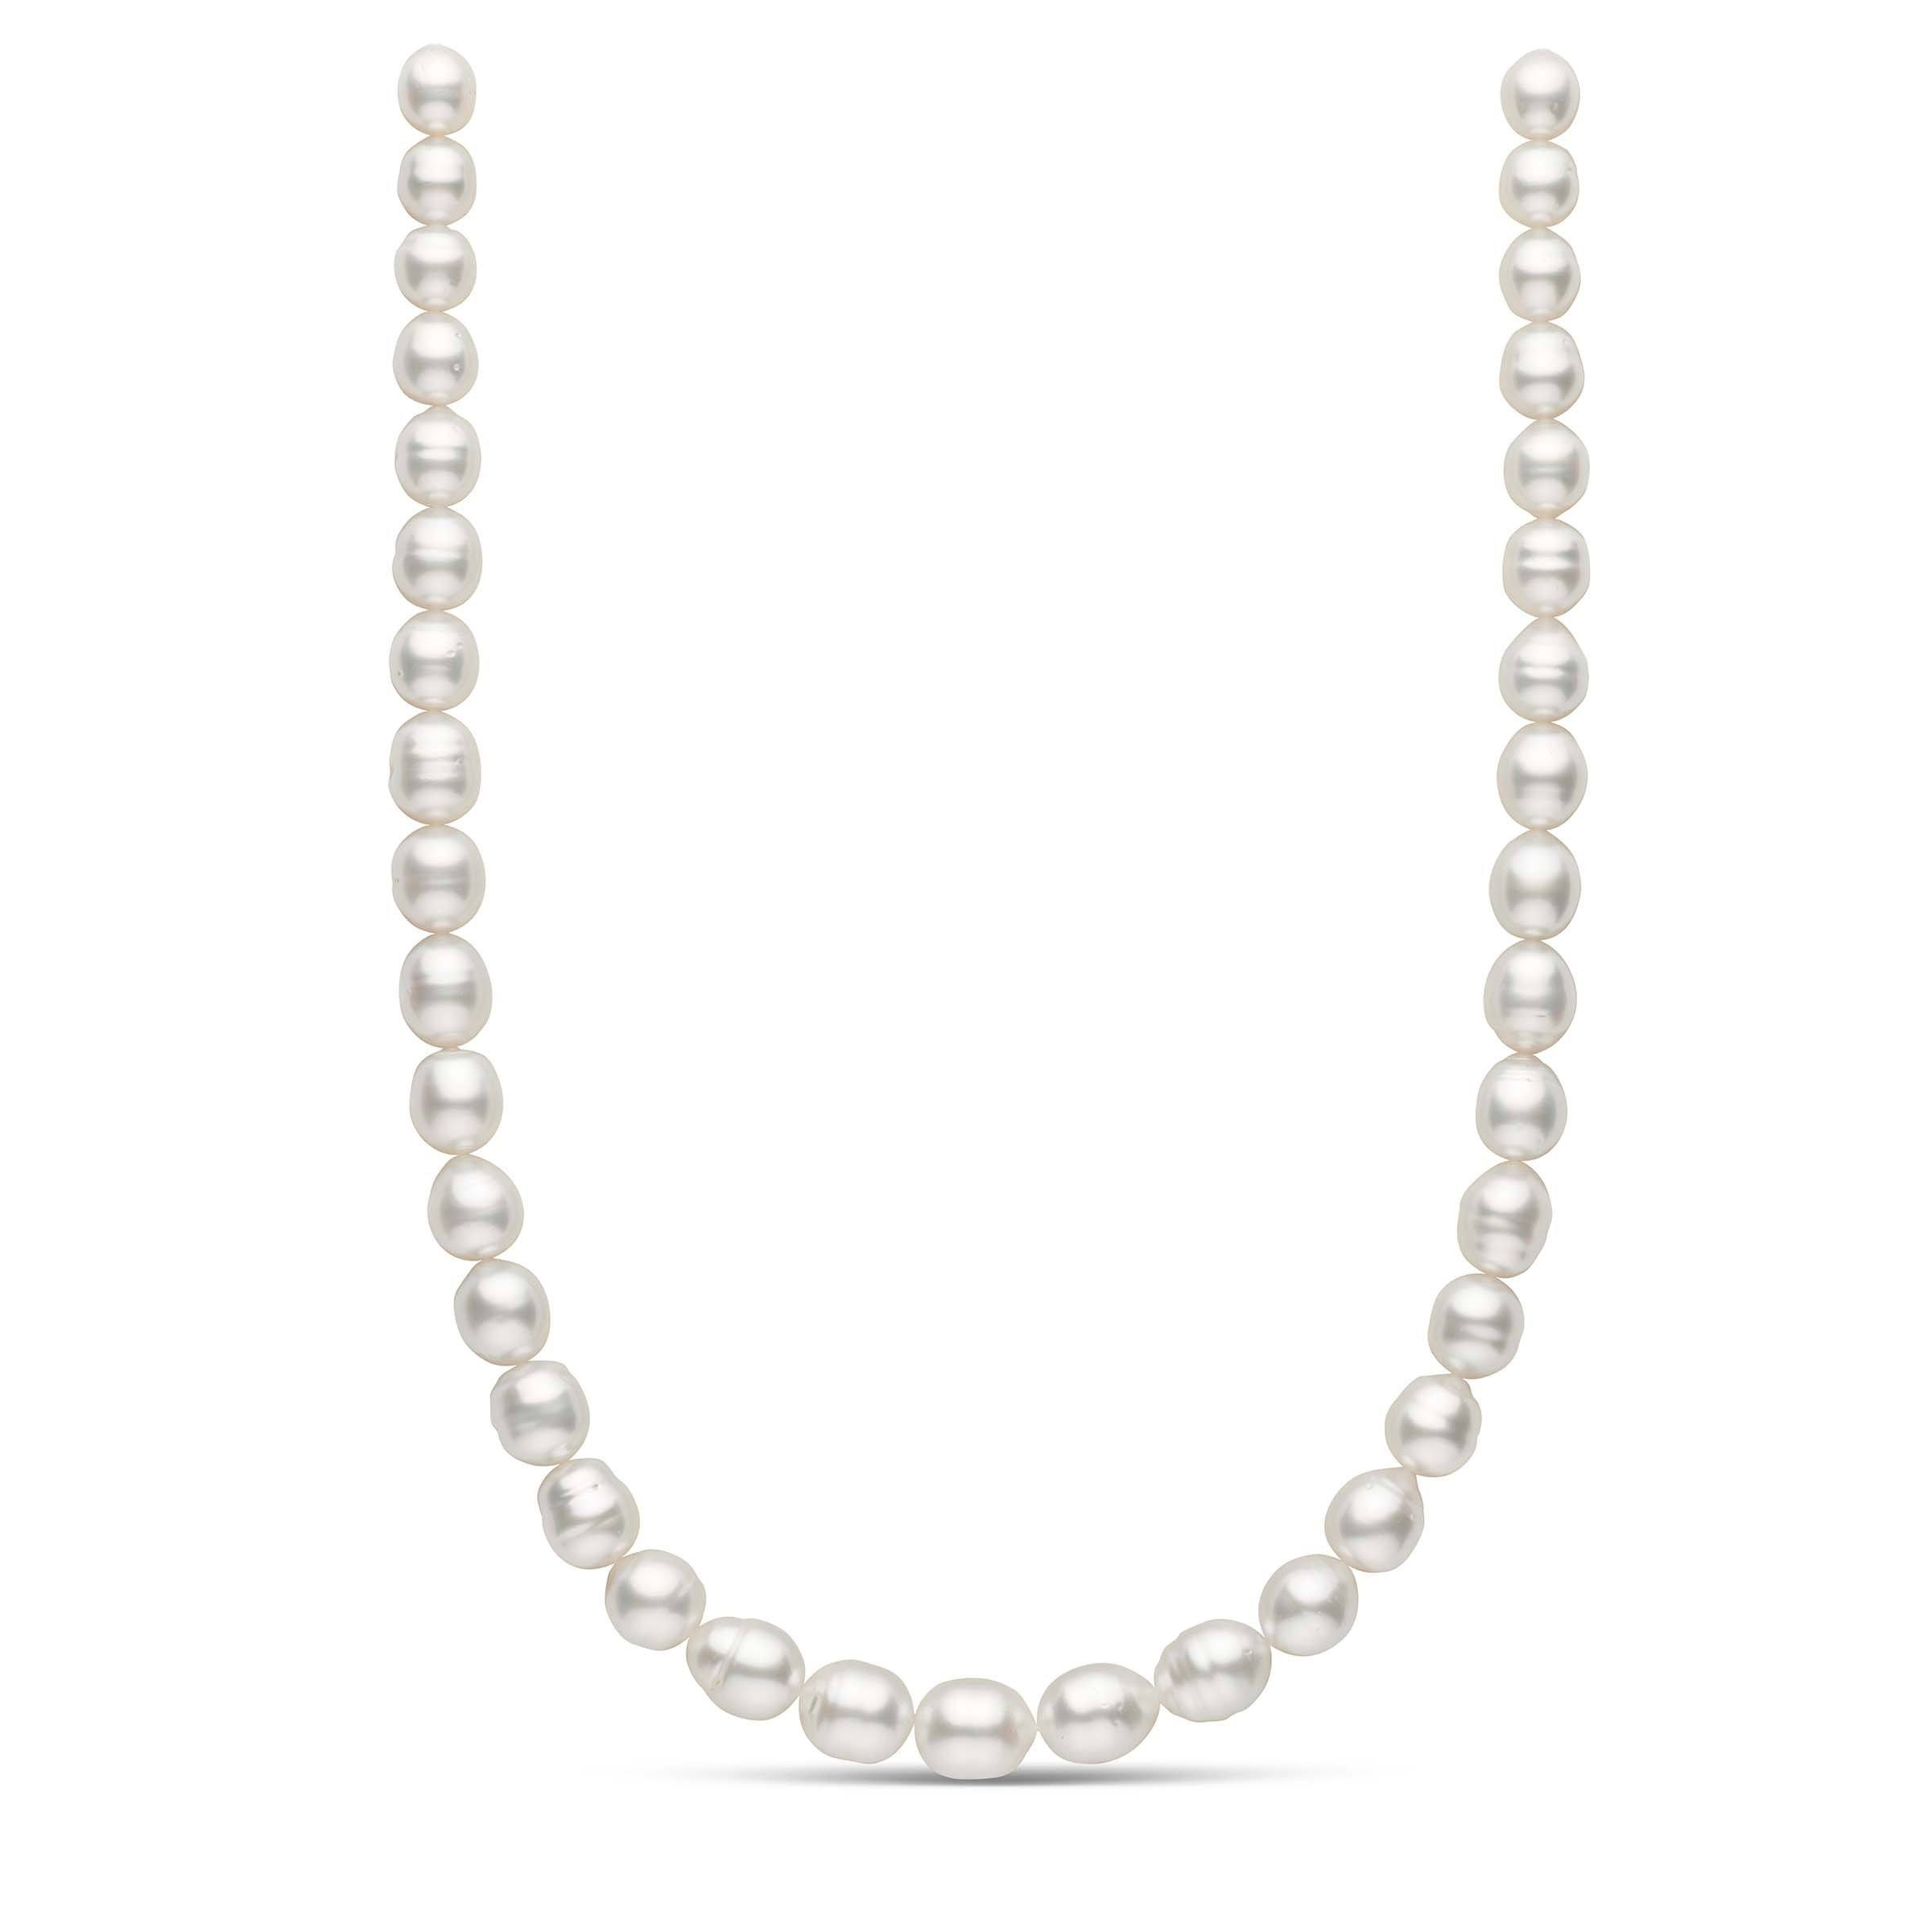 18-inch 8.6-10.9 mm AA+ Baroque White South Sea Pearl Necklace